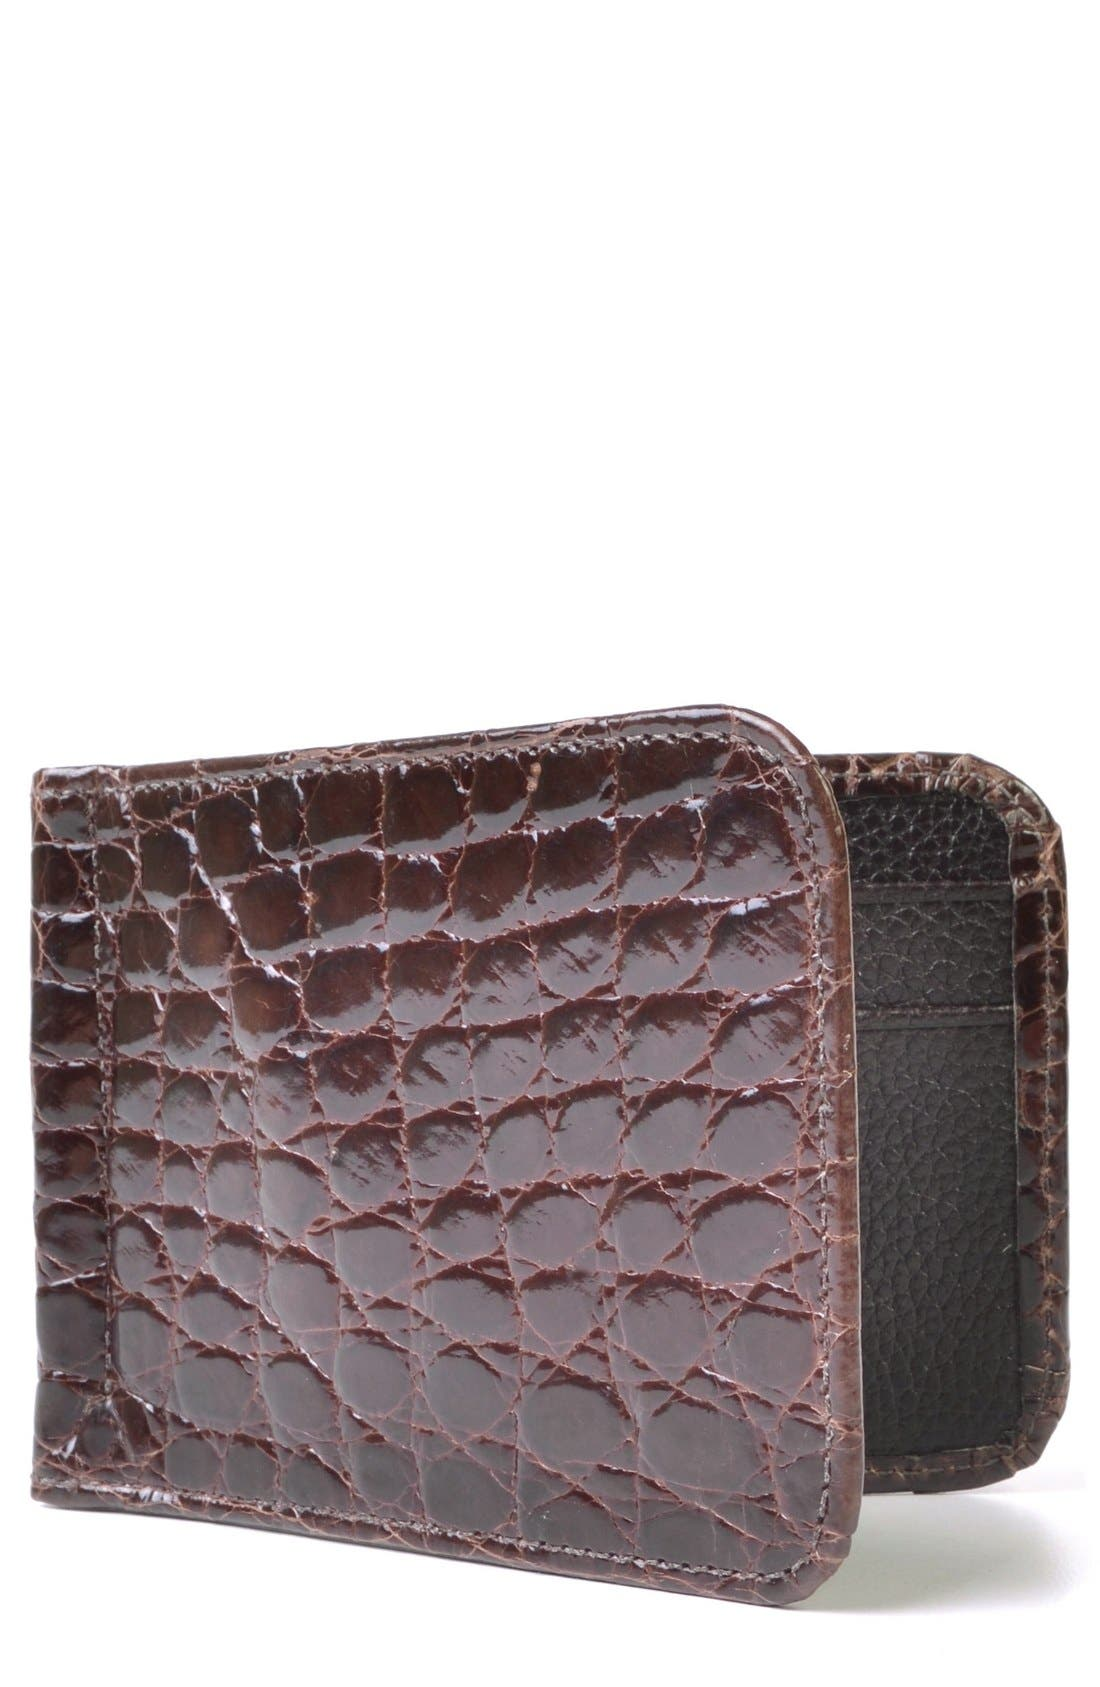 Martin Dingman 'Joseph' Genuine American Alligator Leather Money Clip Wallet